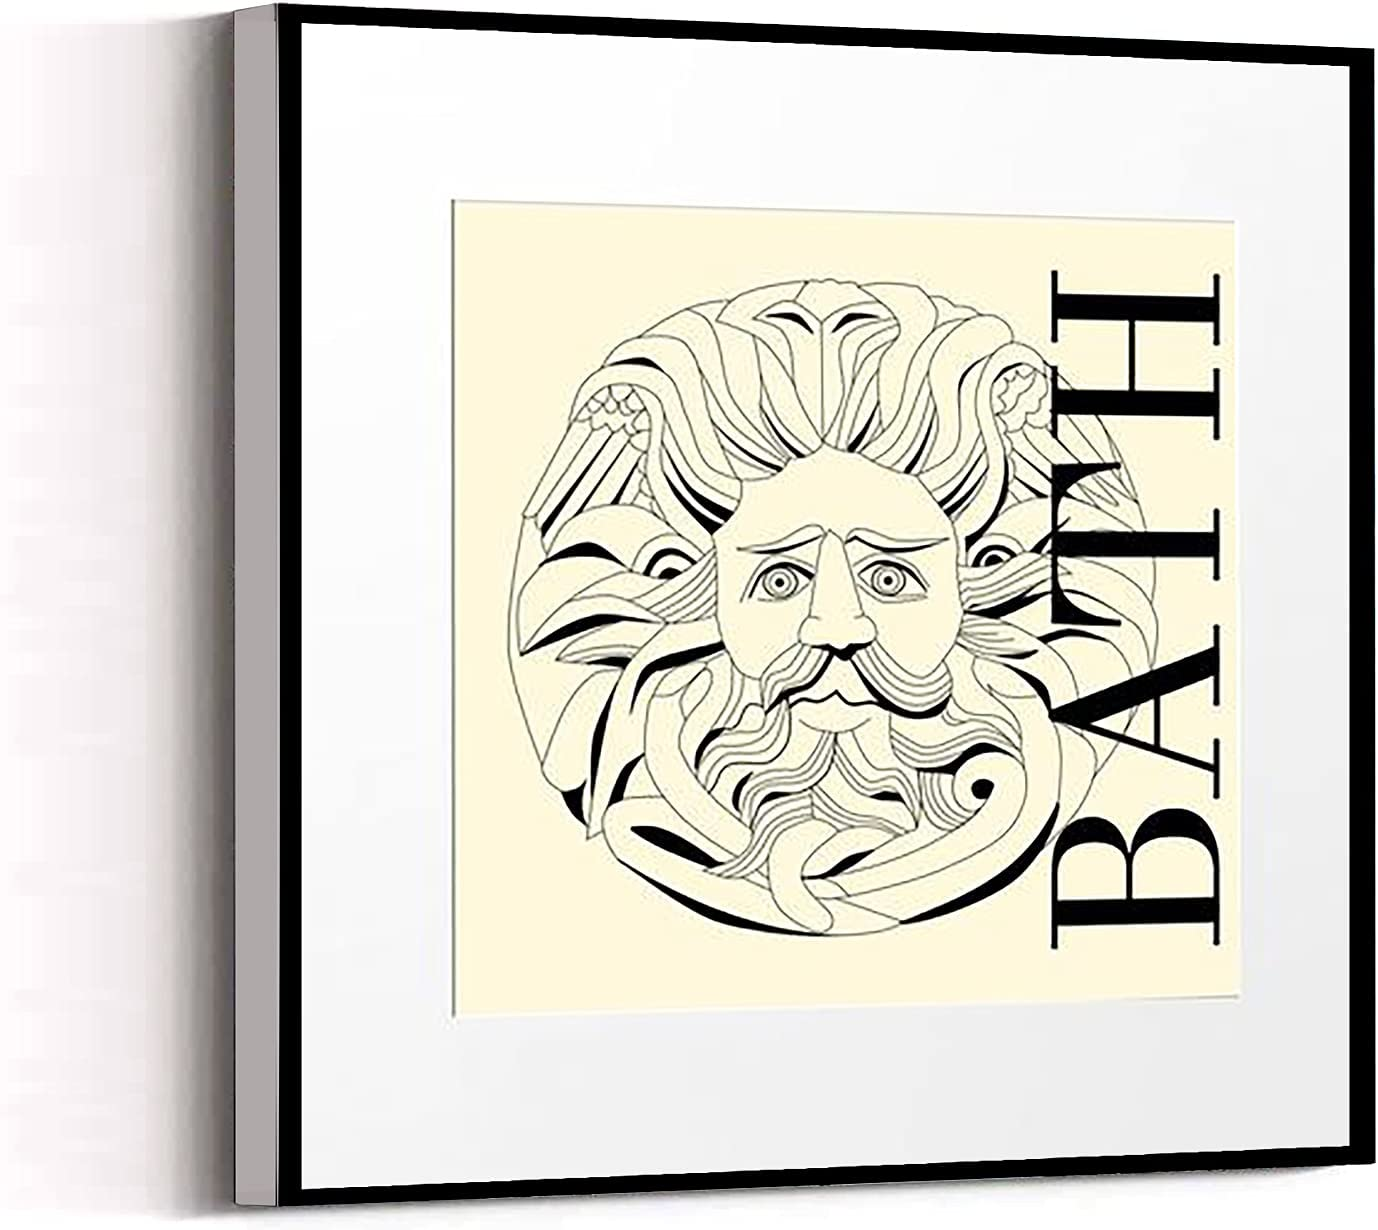 PICTURE FOR HOME DECORATION room decor cheap Bathroom wall art with Sun God 16''x16'' Framed Modern Canvas Wall Art Canvas Prints Home Artwork Decoration for Living Room